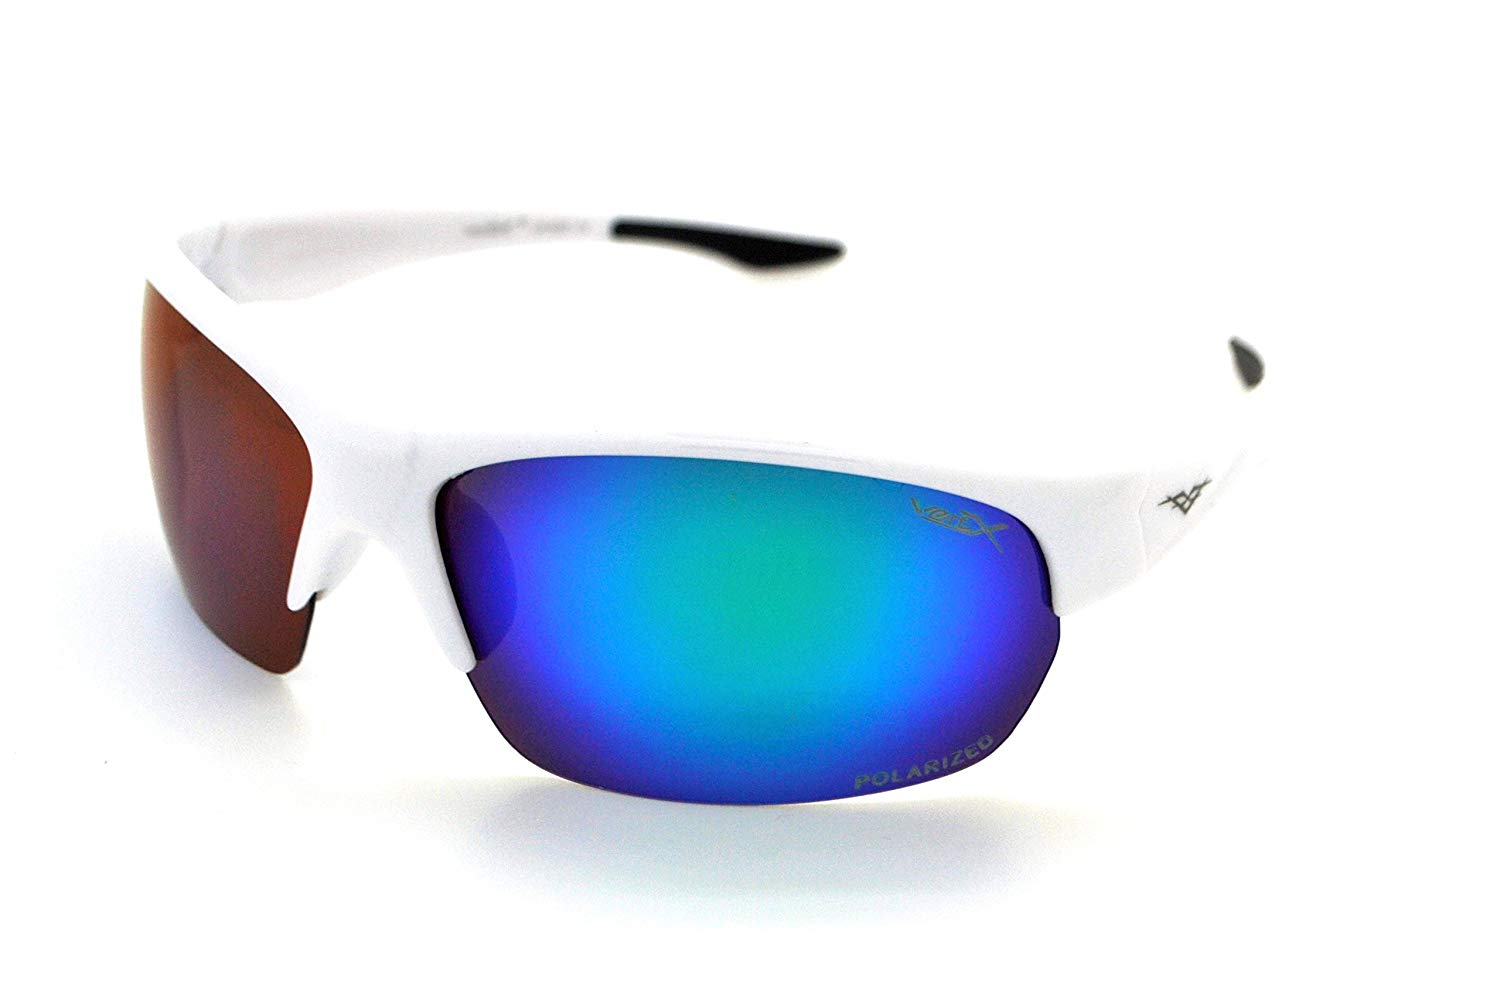 eb30c95d45db Get Quotations · VertX Polarized Mens   Womens Sport Wrap Sunglasses  Cycling Running w Microfiber